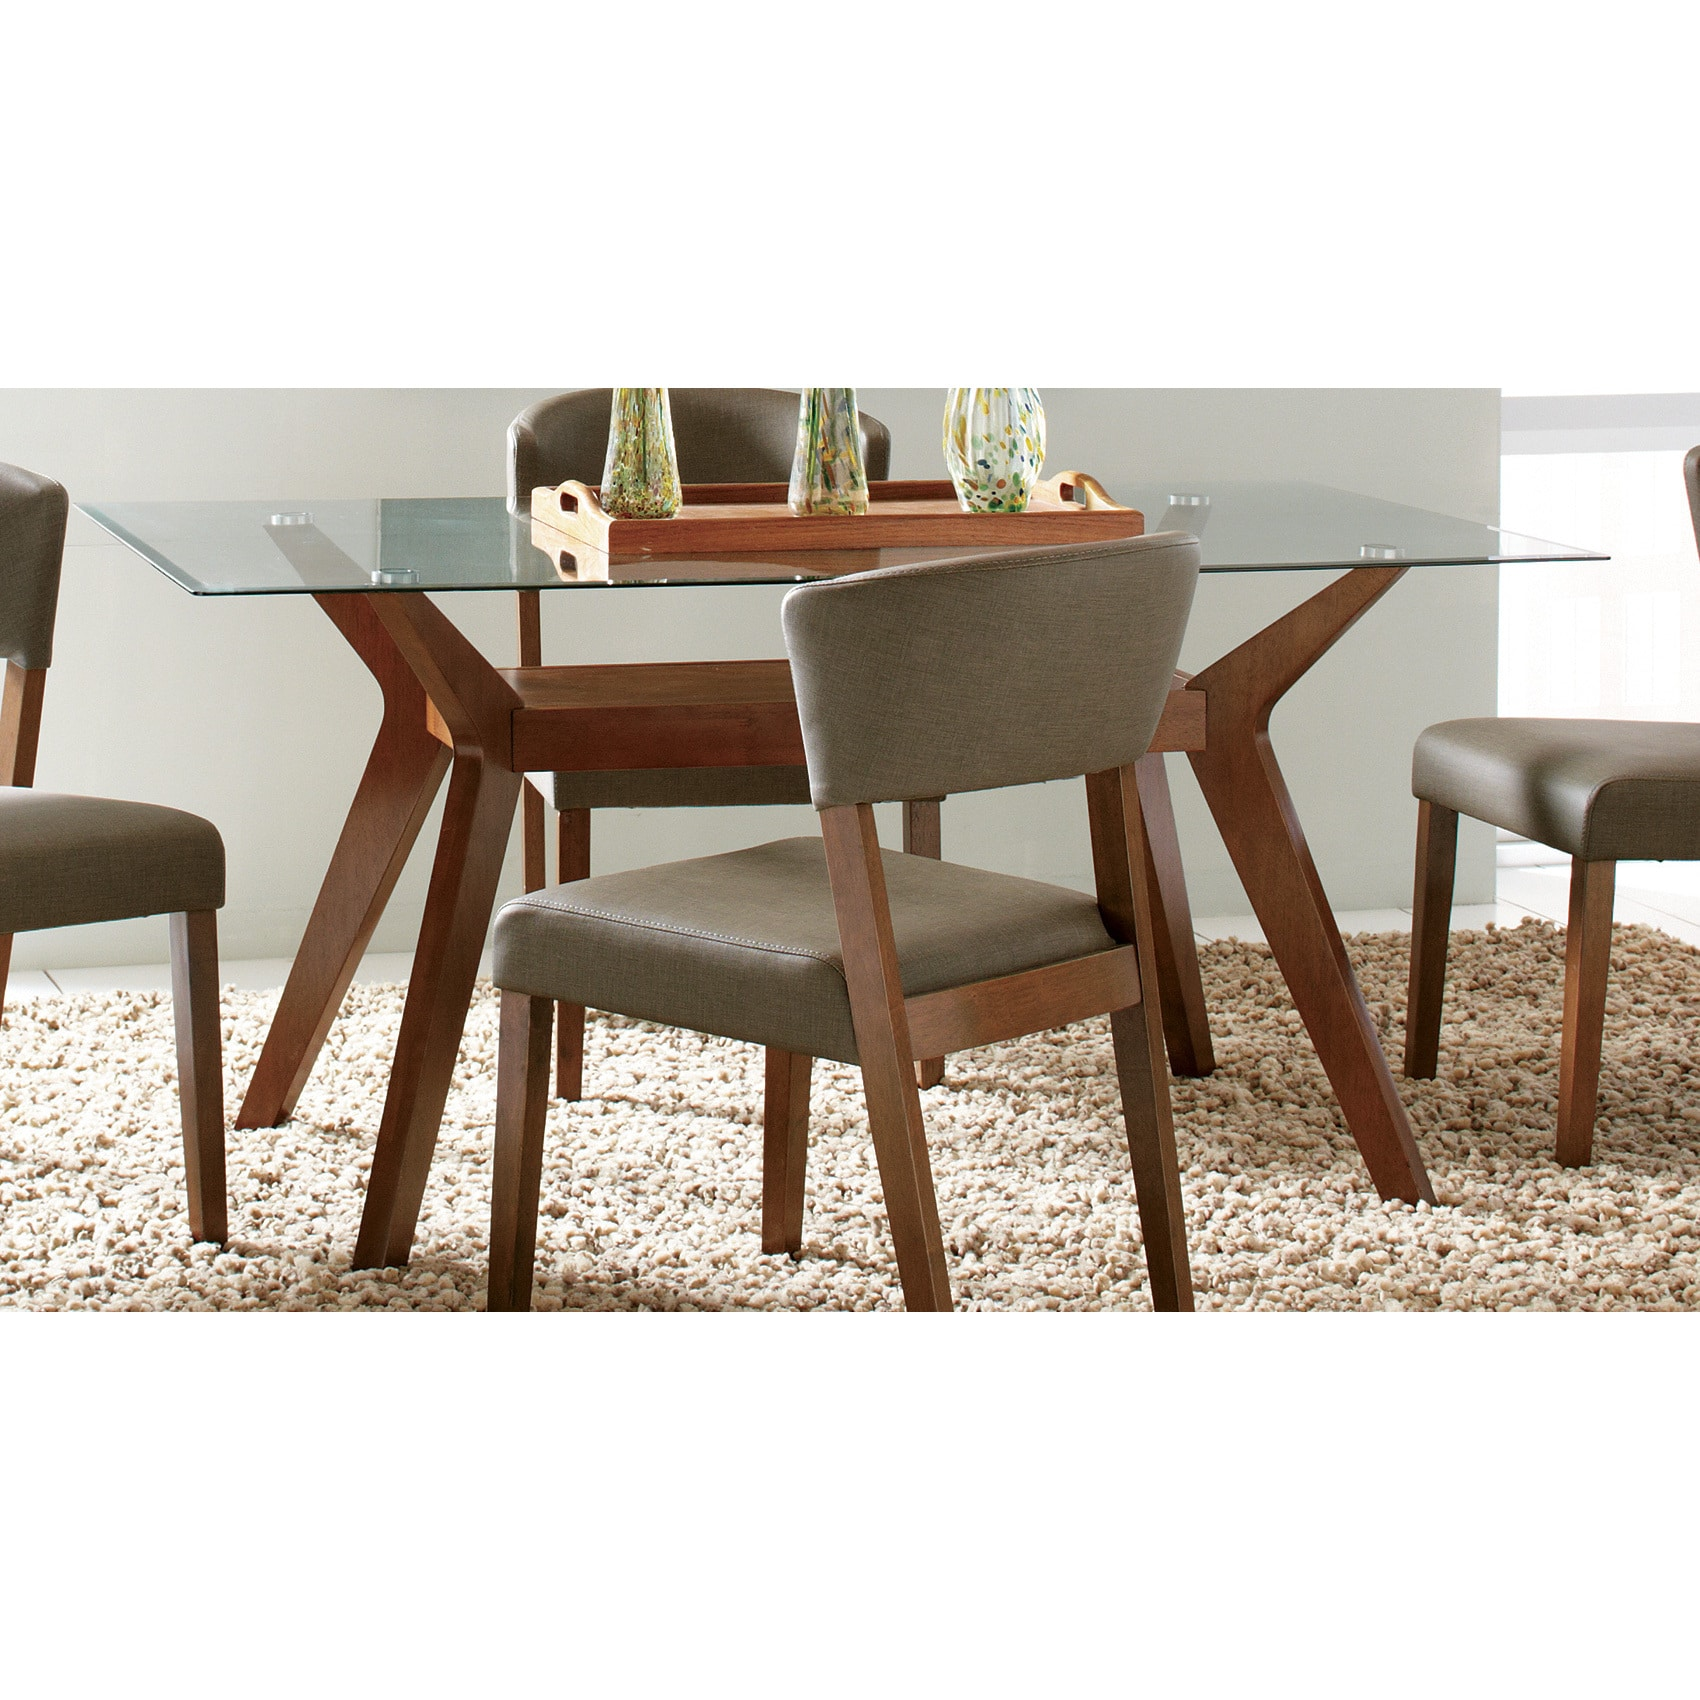 Shop Coaster Company Paxton Nutmeg Dining Table